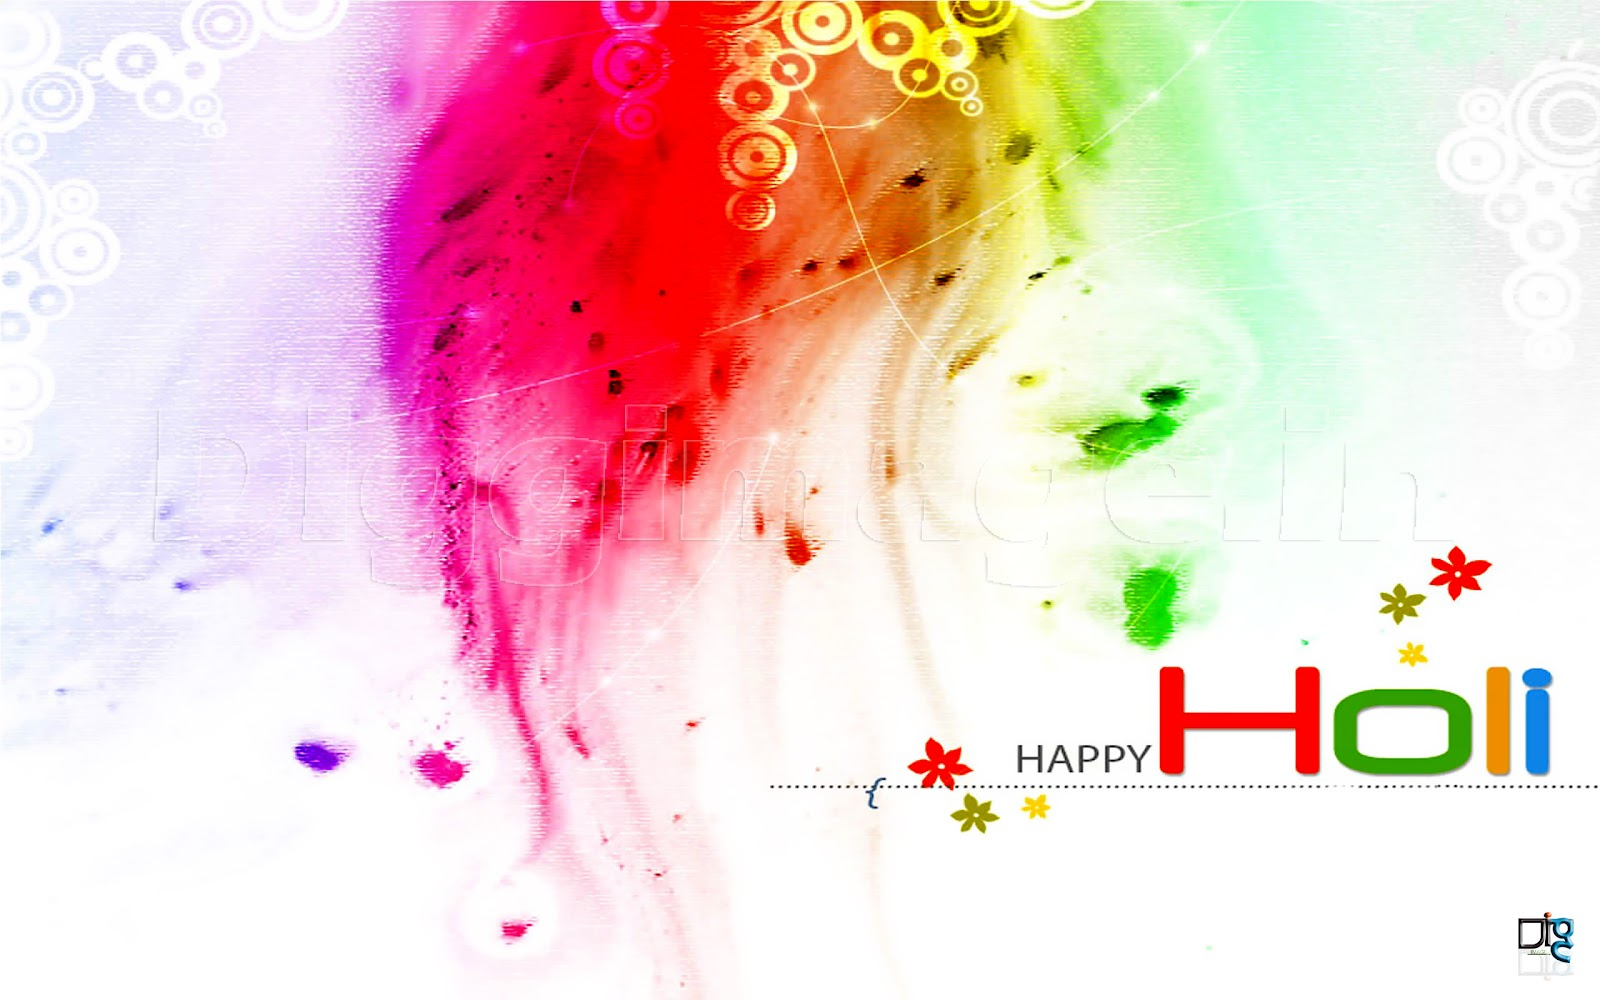 http://3.bp.blogspot.com/-E5QECwdspwE/T03Np7wHOwI/AAAAAAAAA4g/emb9tOfk-Kg/s1600/Holi-3D-holi-3d-widescreen-high-ree-wallpaper-free-download-photo-stock-holidays-images-resolution-desktop-f.jpg